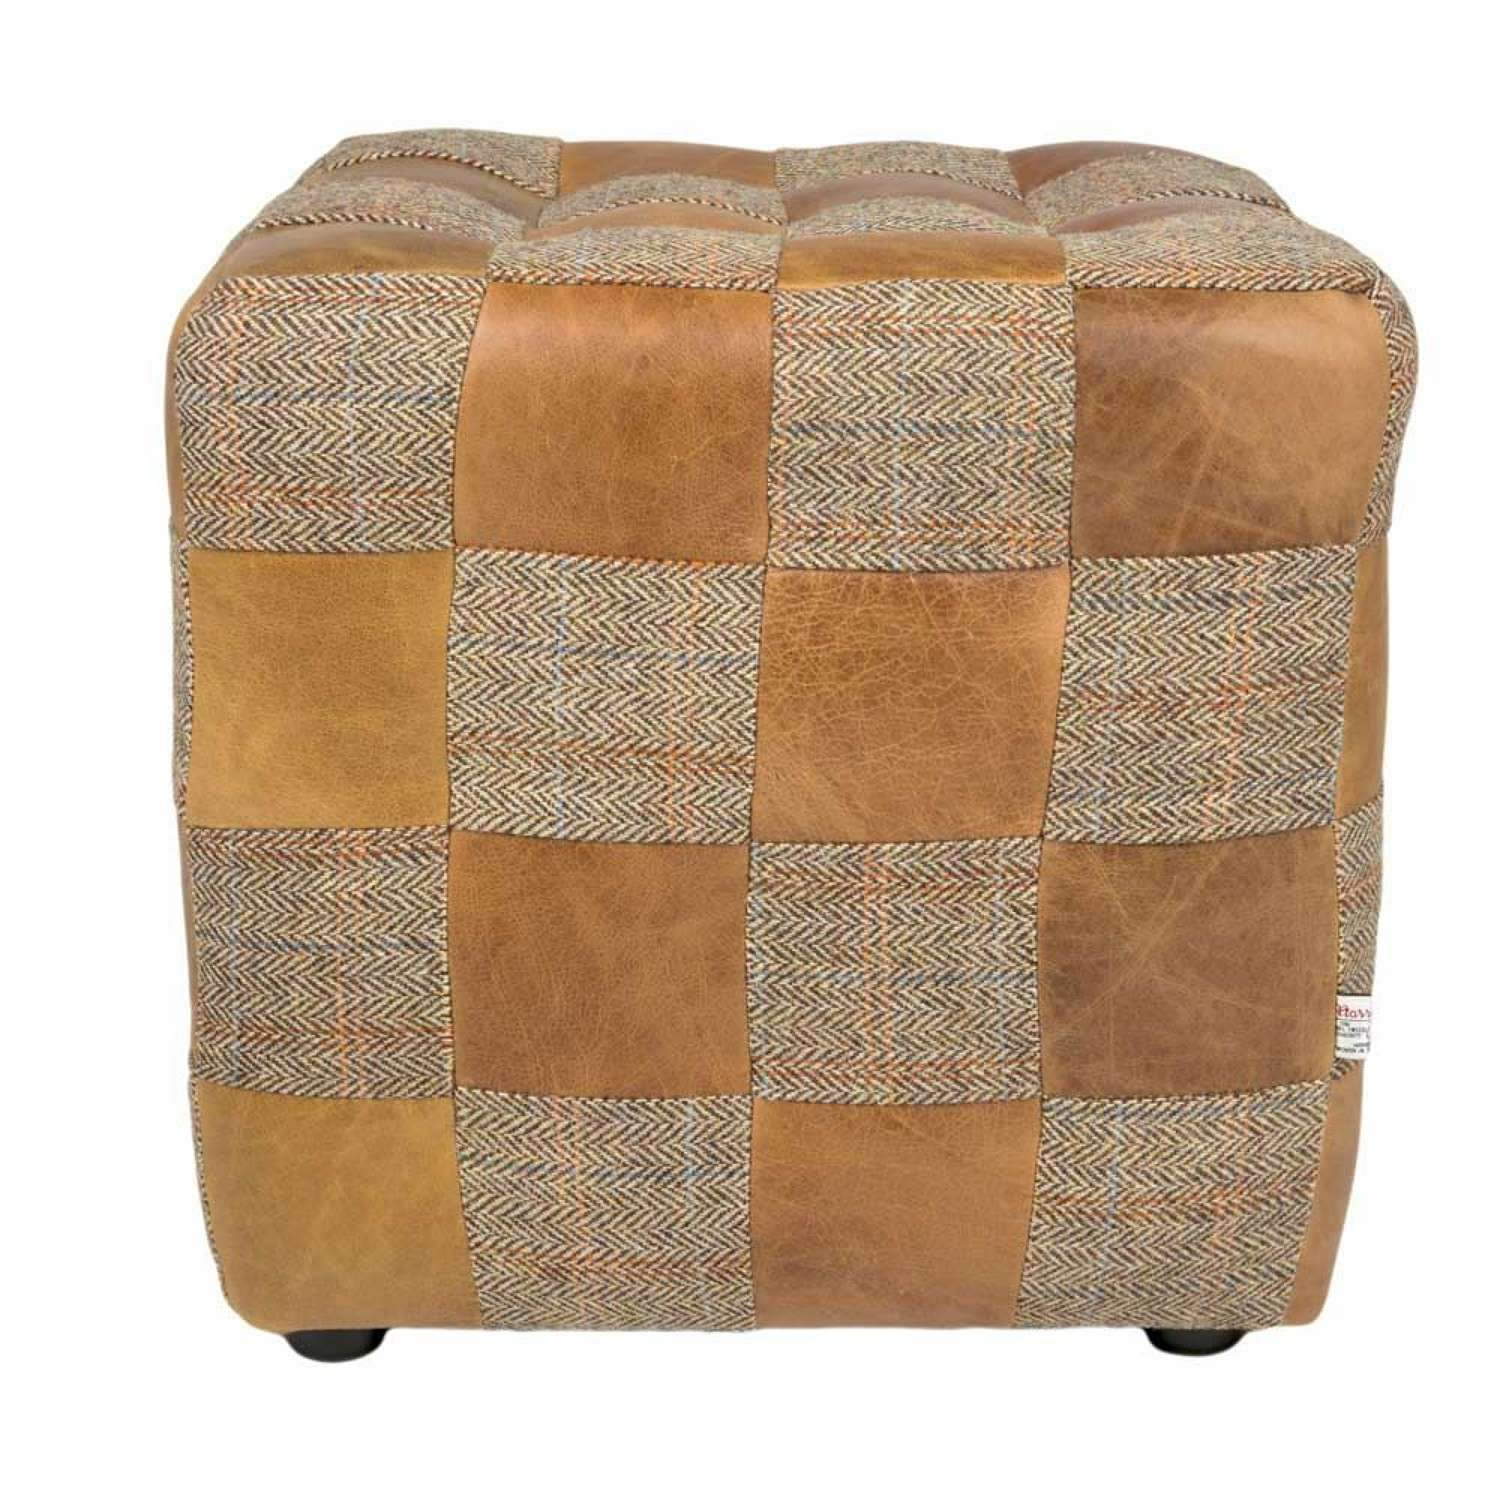 Gamekeeper Harris Tweed and Cerato Leather Patchwork Footstool